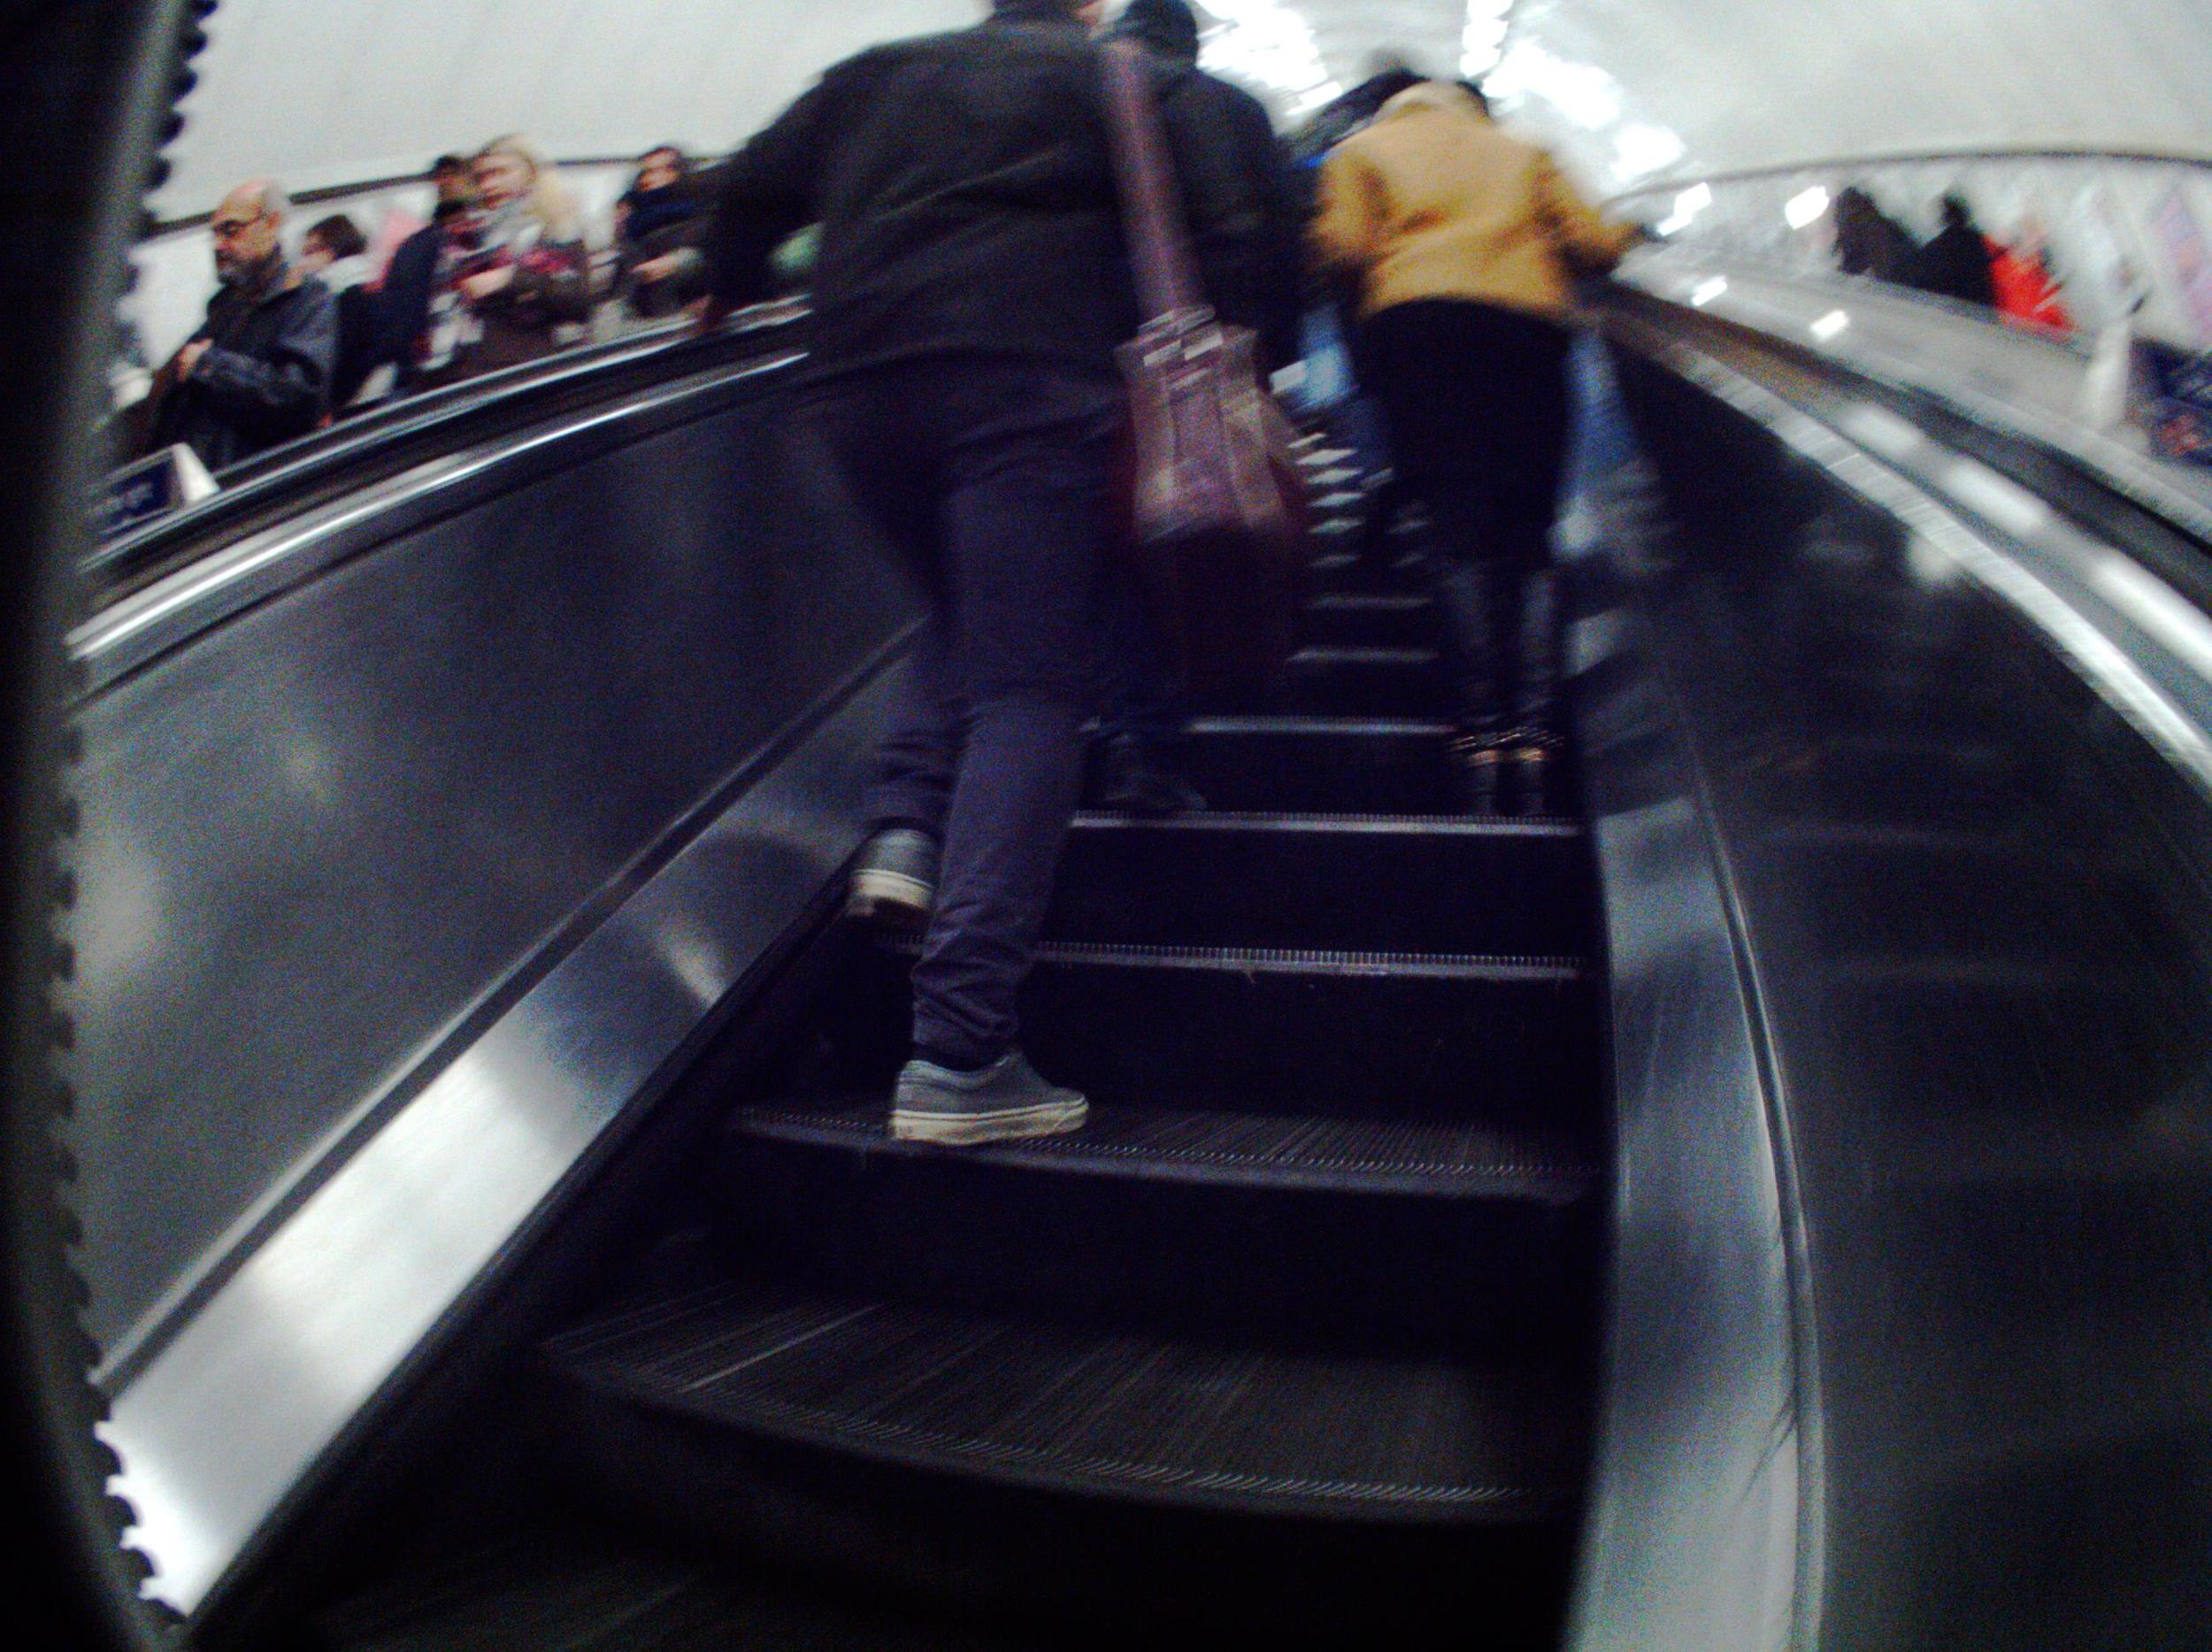 Image 01. Experimenting with methods - Image taken automatically by Autographer on the London Underground escalators, 02 February 2015.